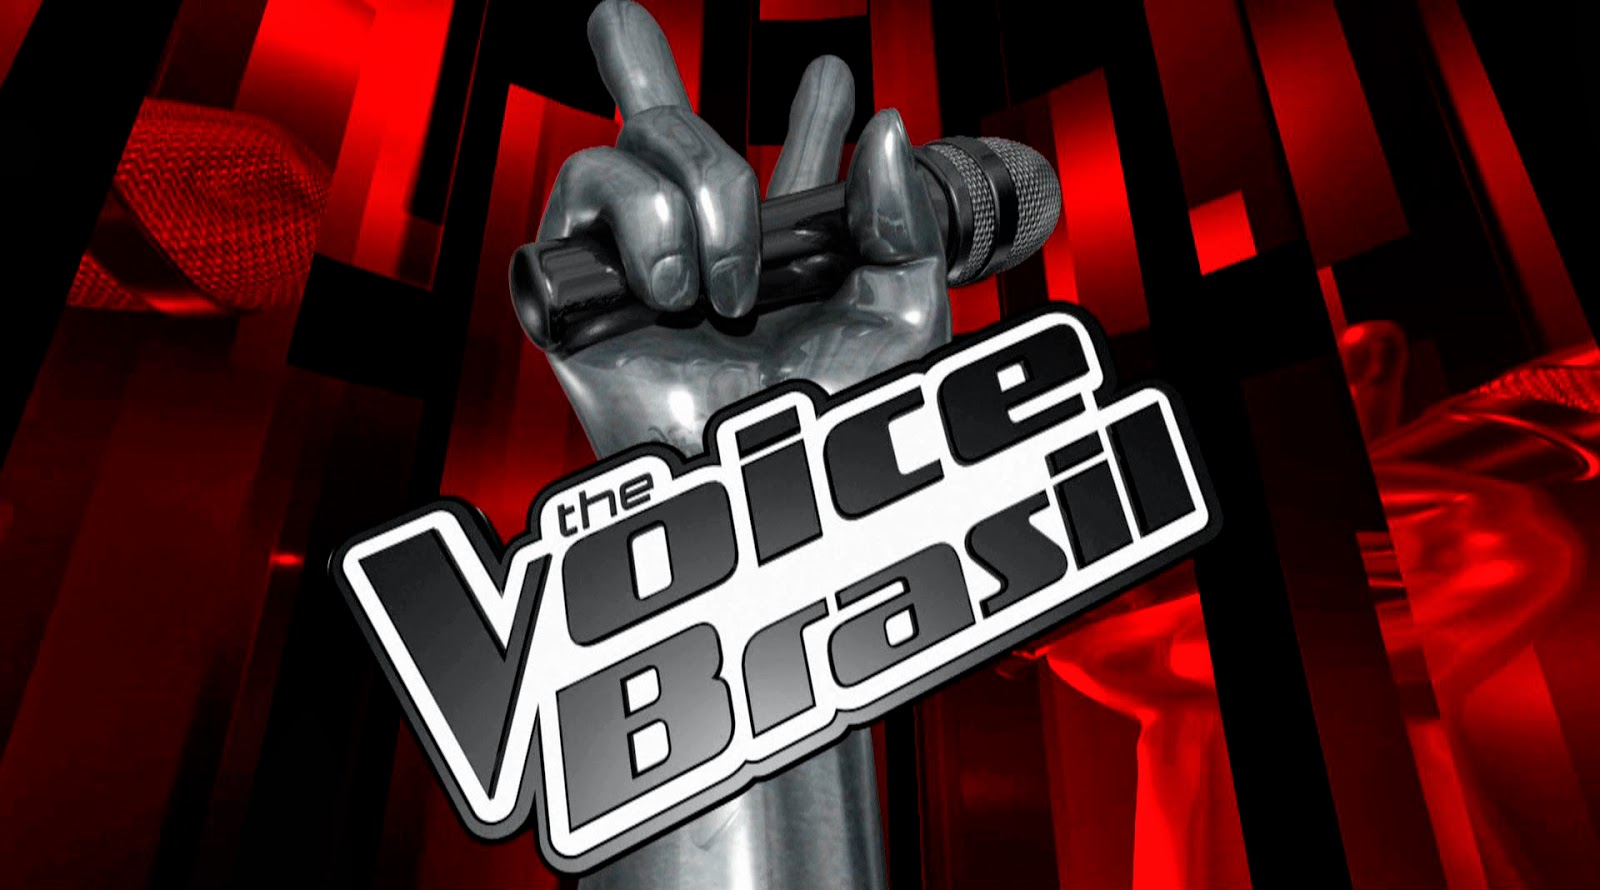 capa Download – The Voice Brasil   S02E02 – HDTV